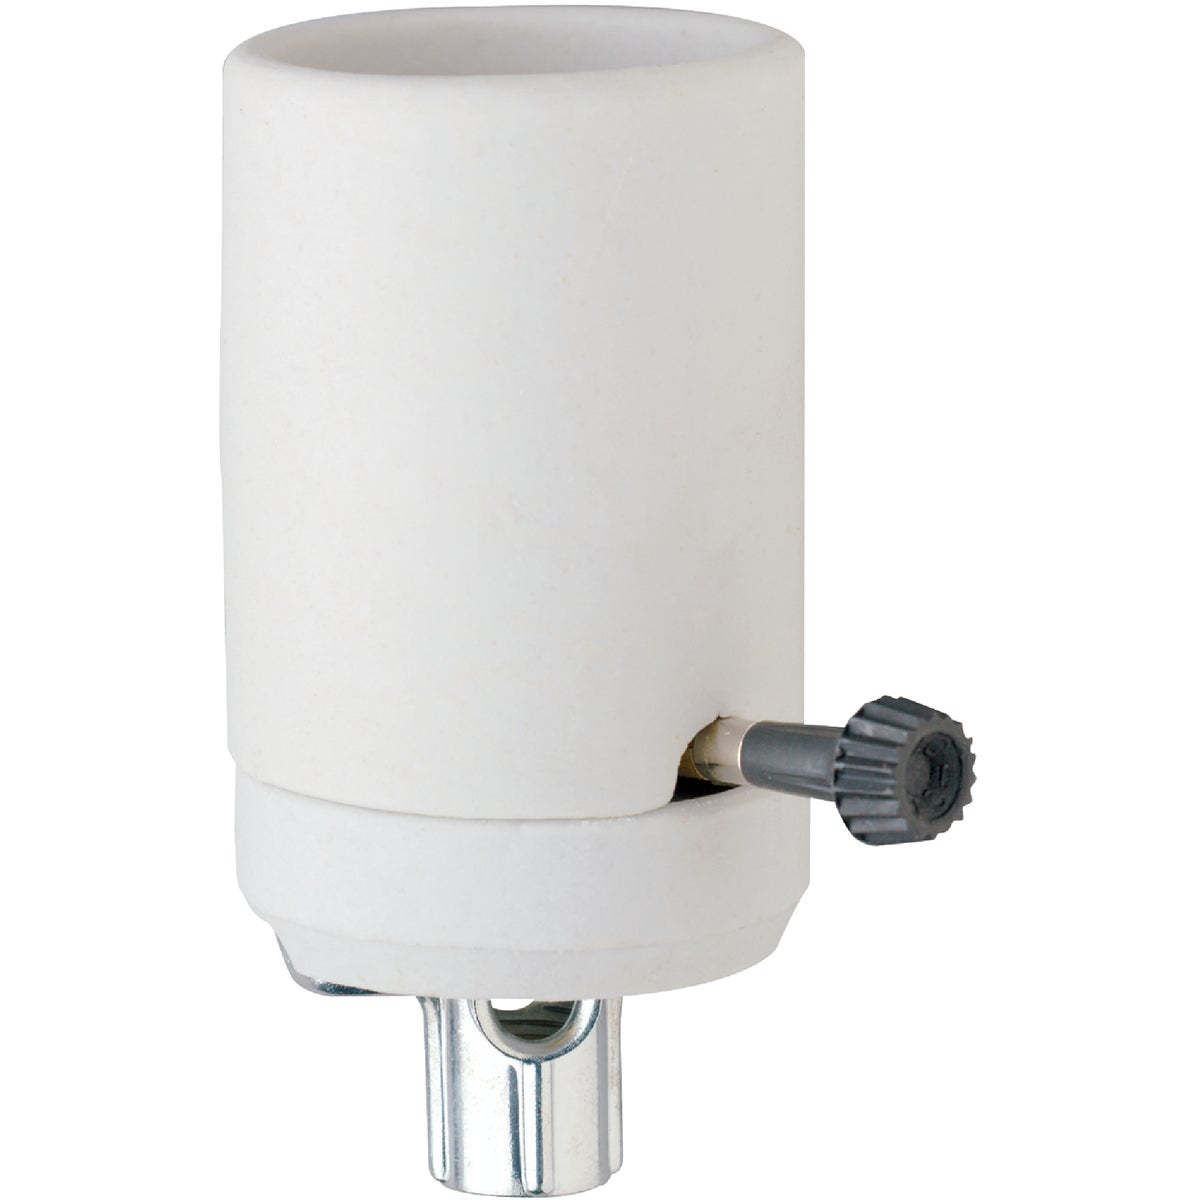 MOGUL BASE LAMP HOLDER - 8601 by Pass Seymour Legrand